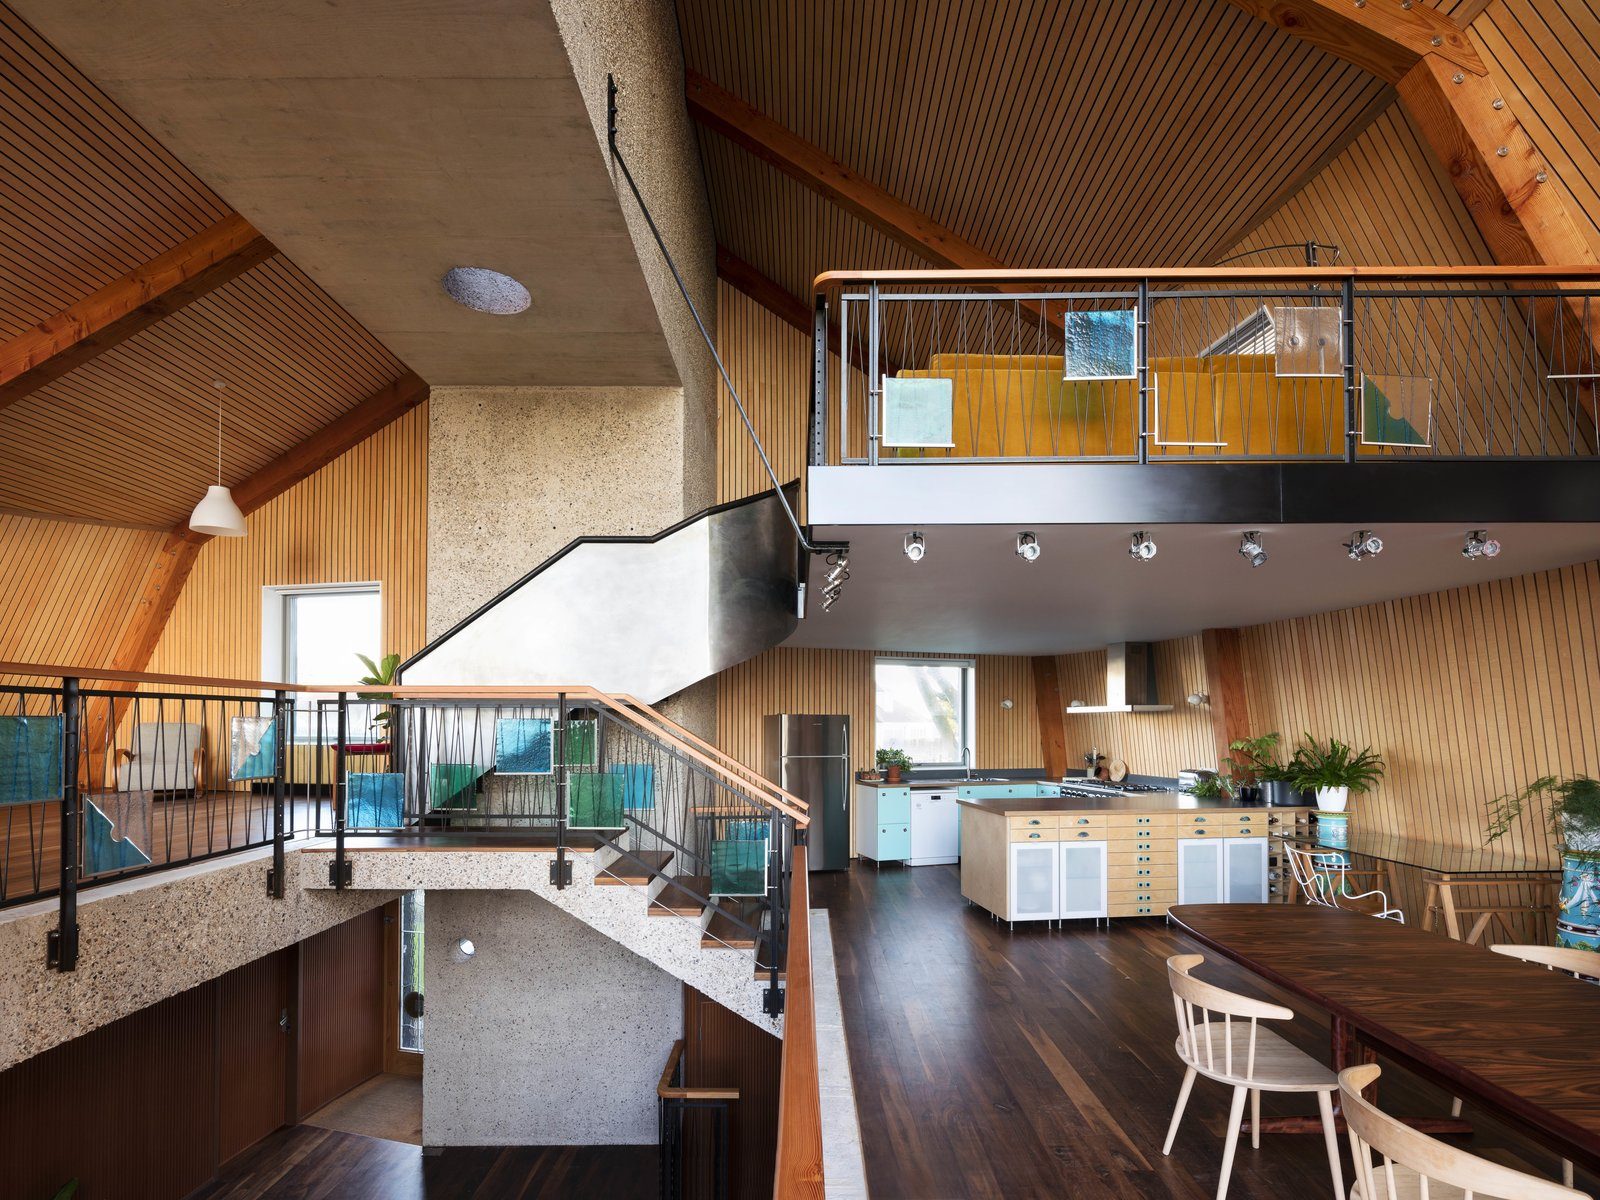 Dining Room, Table, Dark Hardwood Floor, and Chair  The Boathouse from Resembling the Inverted Hull of a Ship, an English Guest House Pays Homage to the Harbor